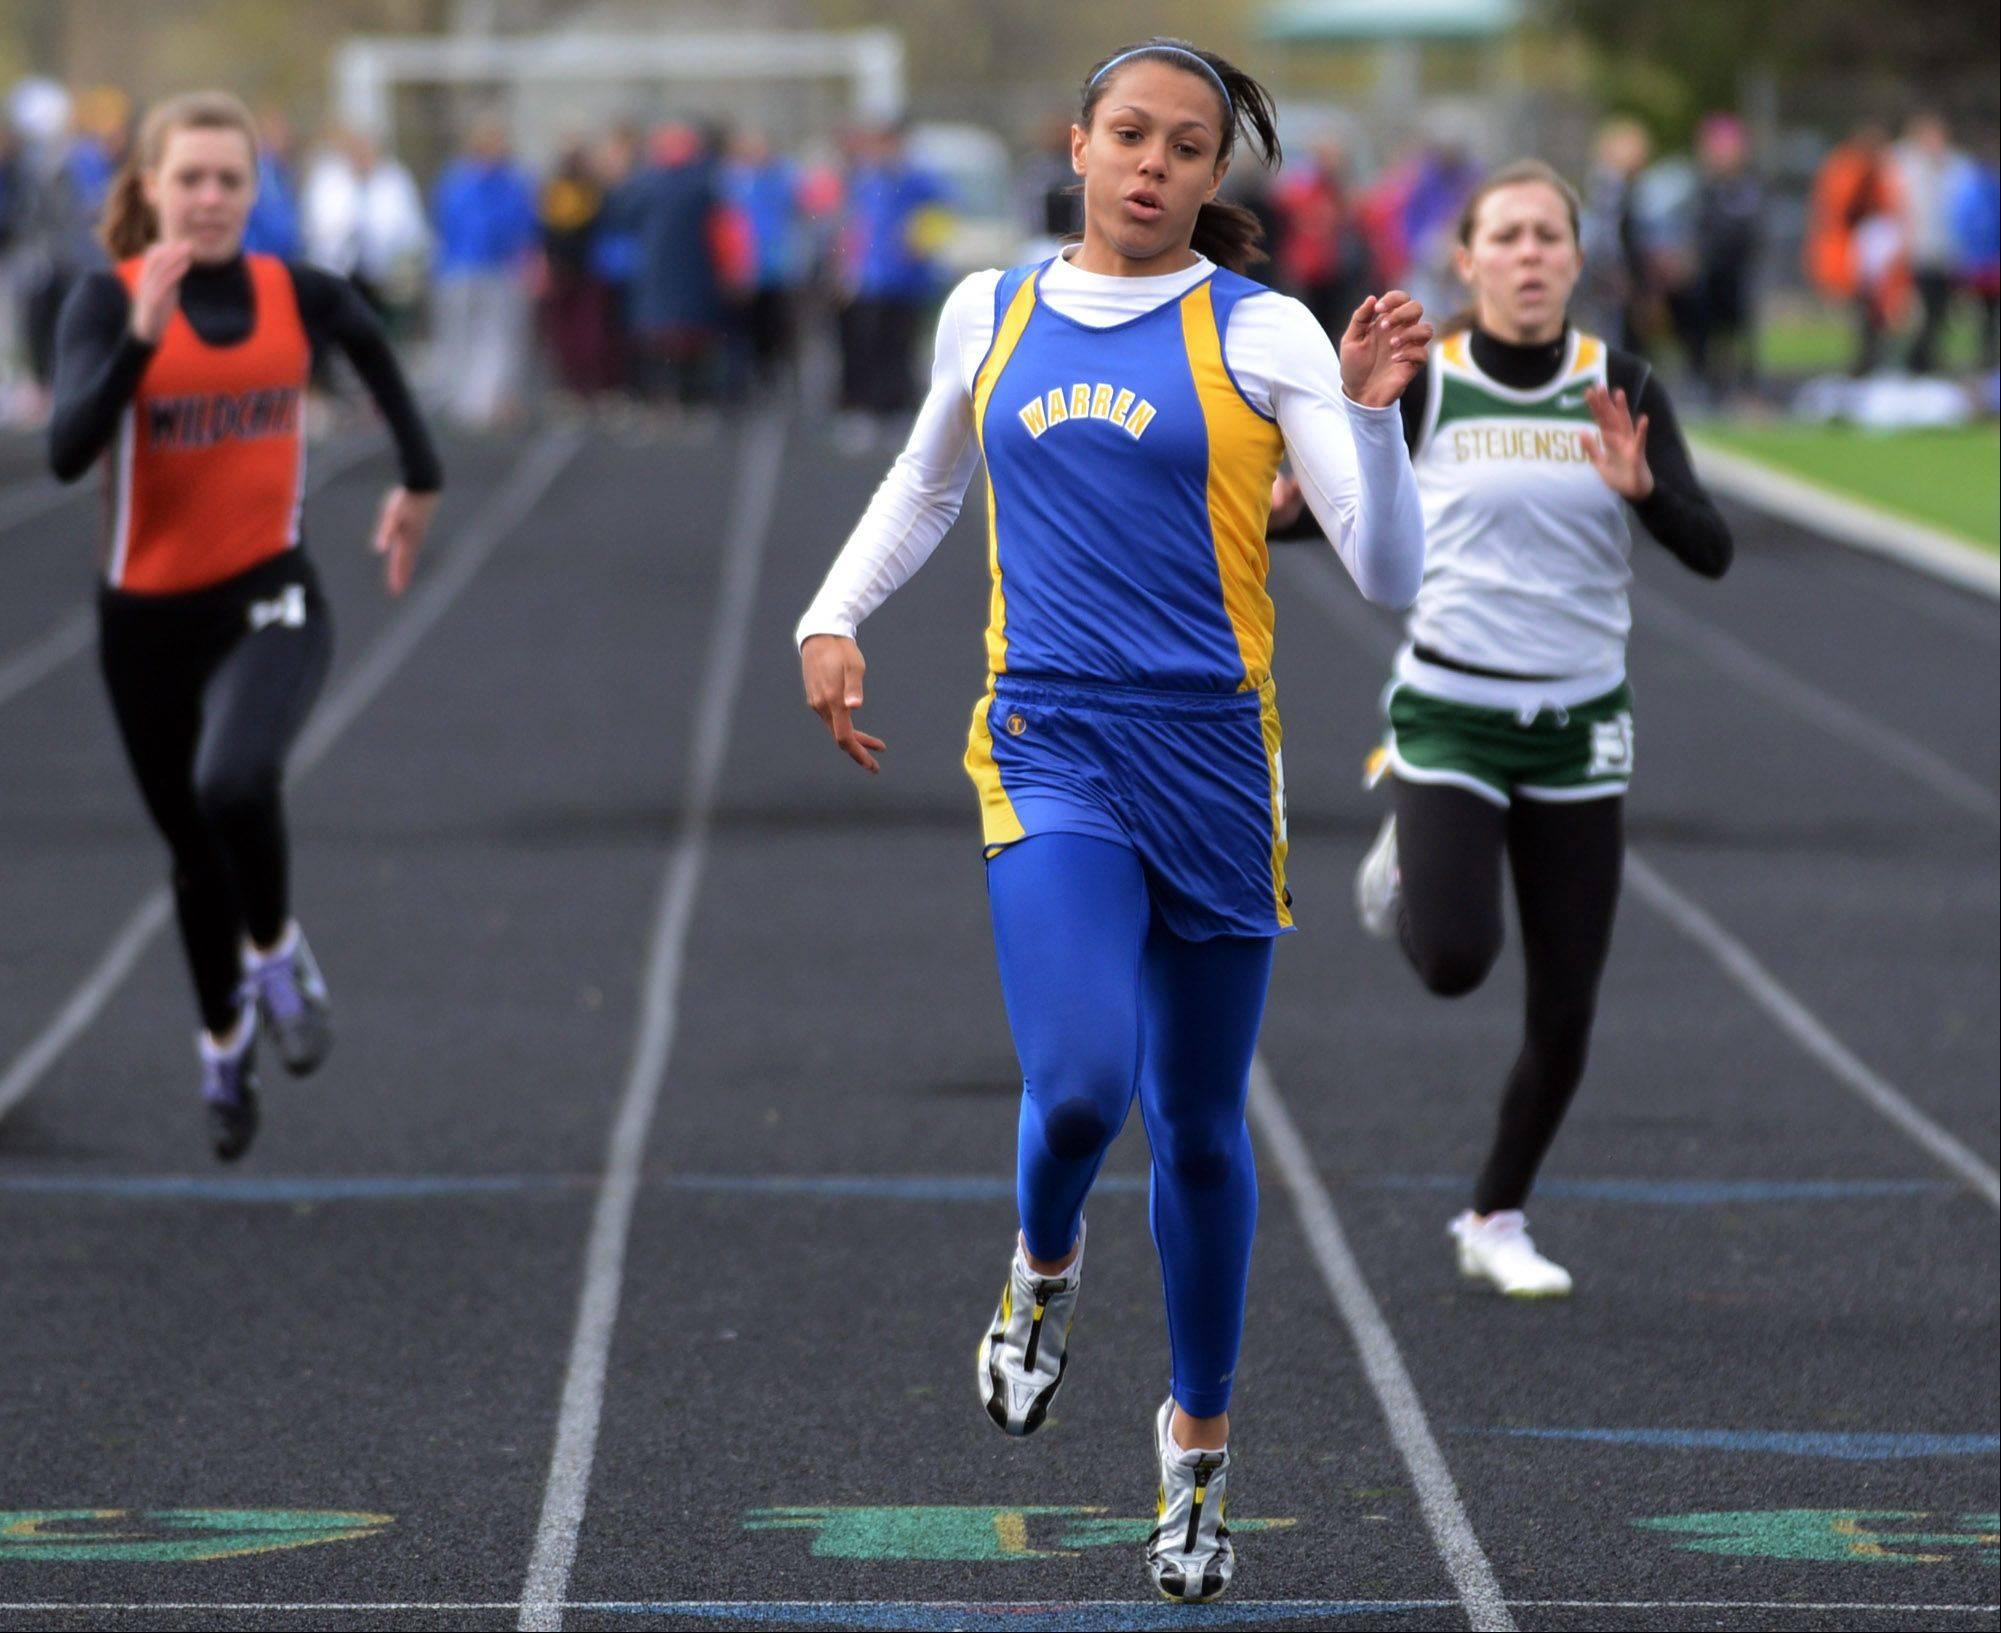 Warren's Brittny Ellis, center, crosses the finish line in a 100-meter dash preliminary race ahead of Libertyville's Megan Henderson, left, and Stevenson's Lily Marks Thursday at the North Suburban Conference girls track meet in Lincolnshire.